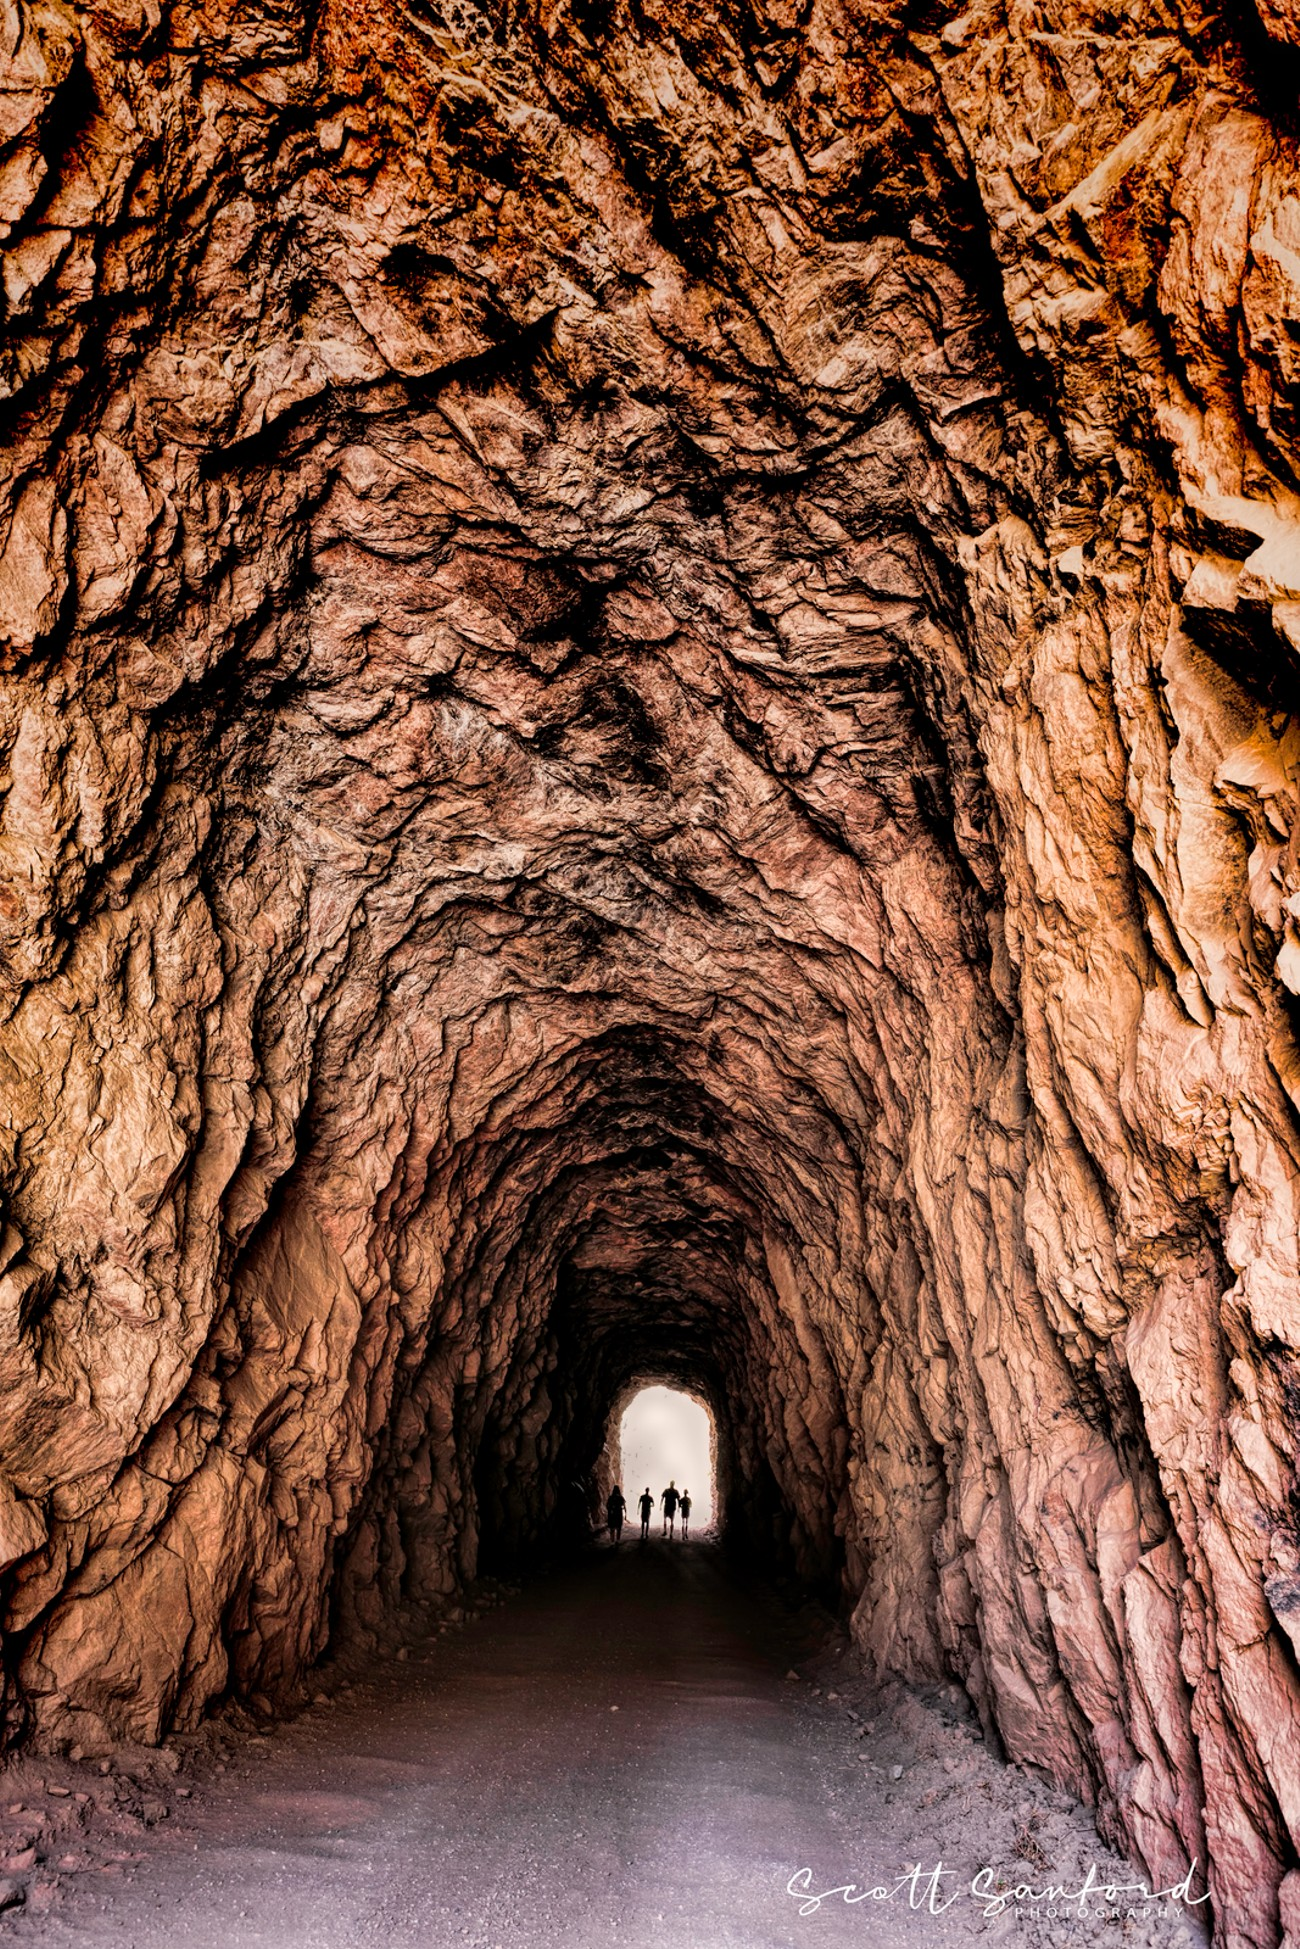 One of the old train tunnels that are part of Phantom Canyon Road